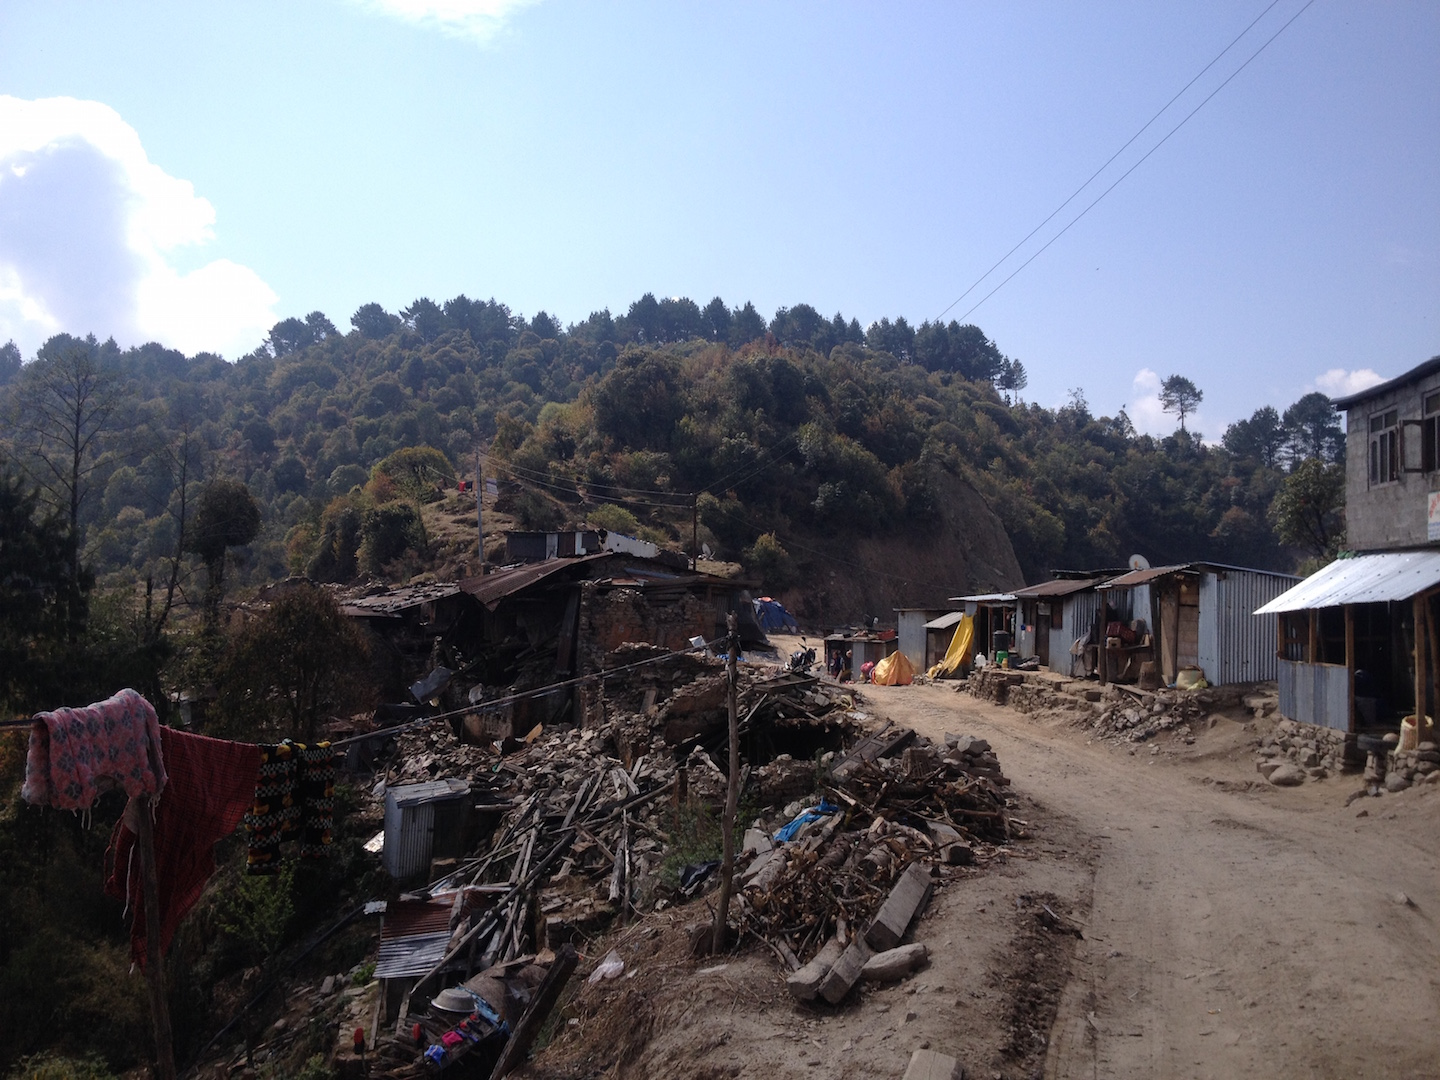 Rubble from Nepal's earthquake